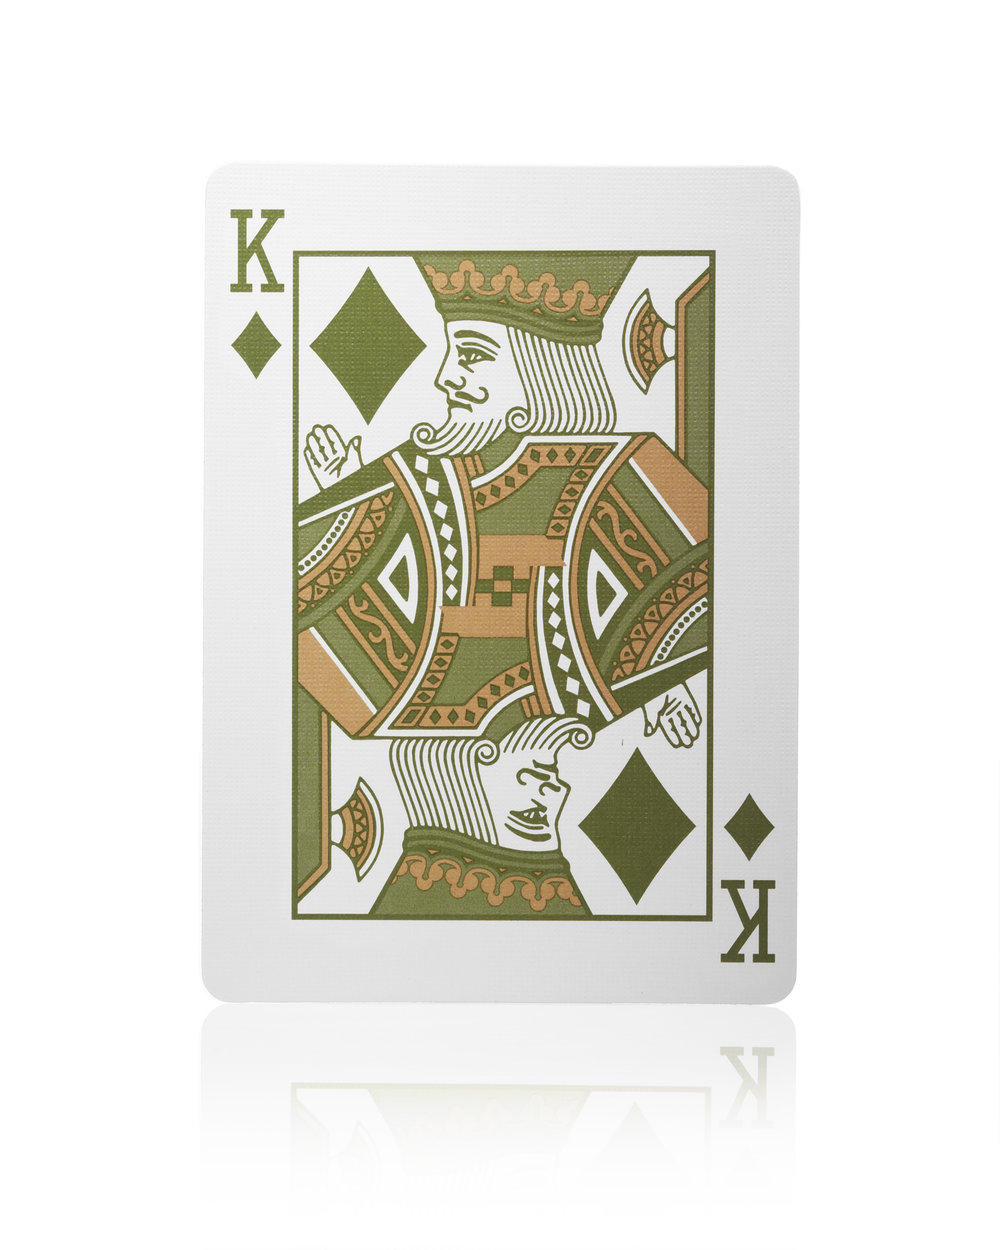 110330-PlayingCards-PlayingCards-007 copy.jpg